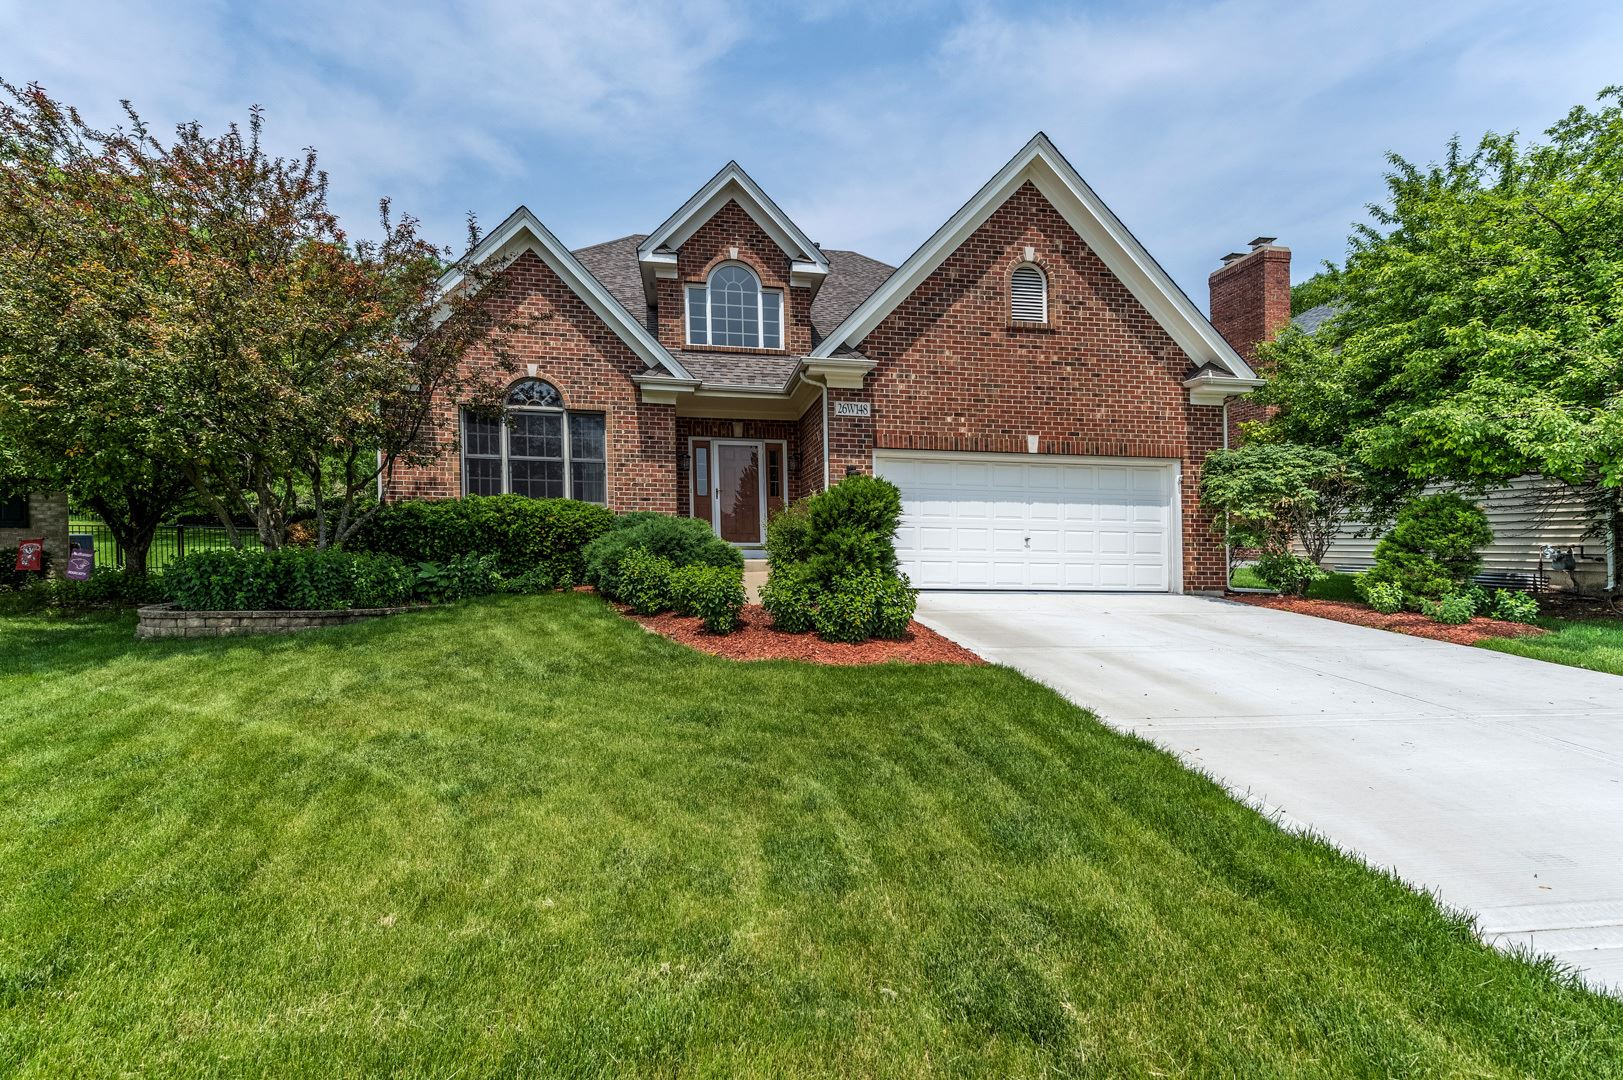 26W148 Waterbury Court, Wheaton, IL 60187 - #: 10522559